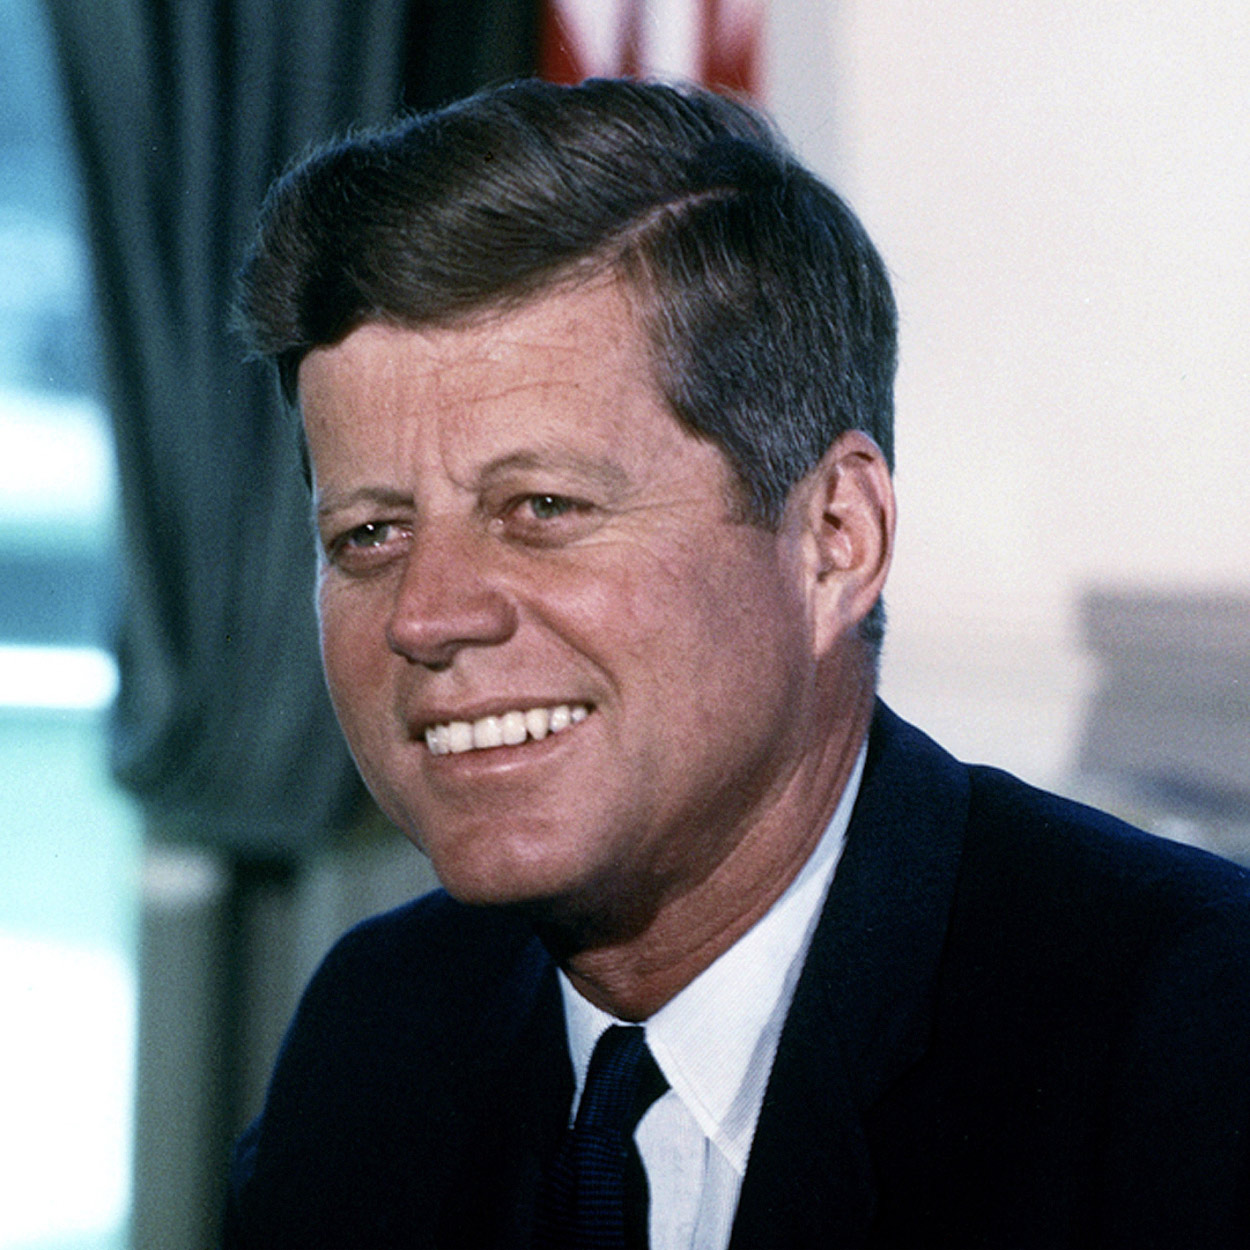 Portrait of John F. Kennedy, the 35th President of the United States